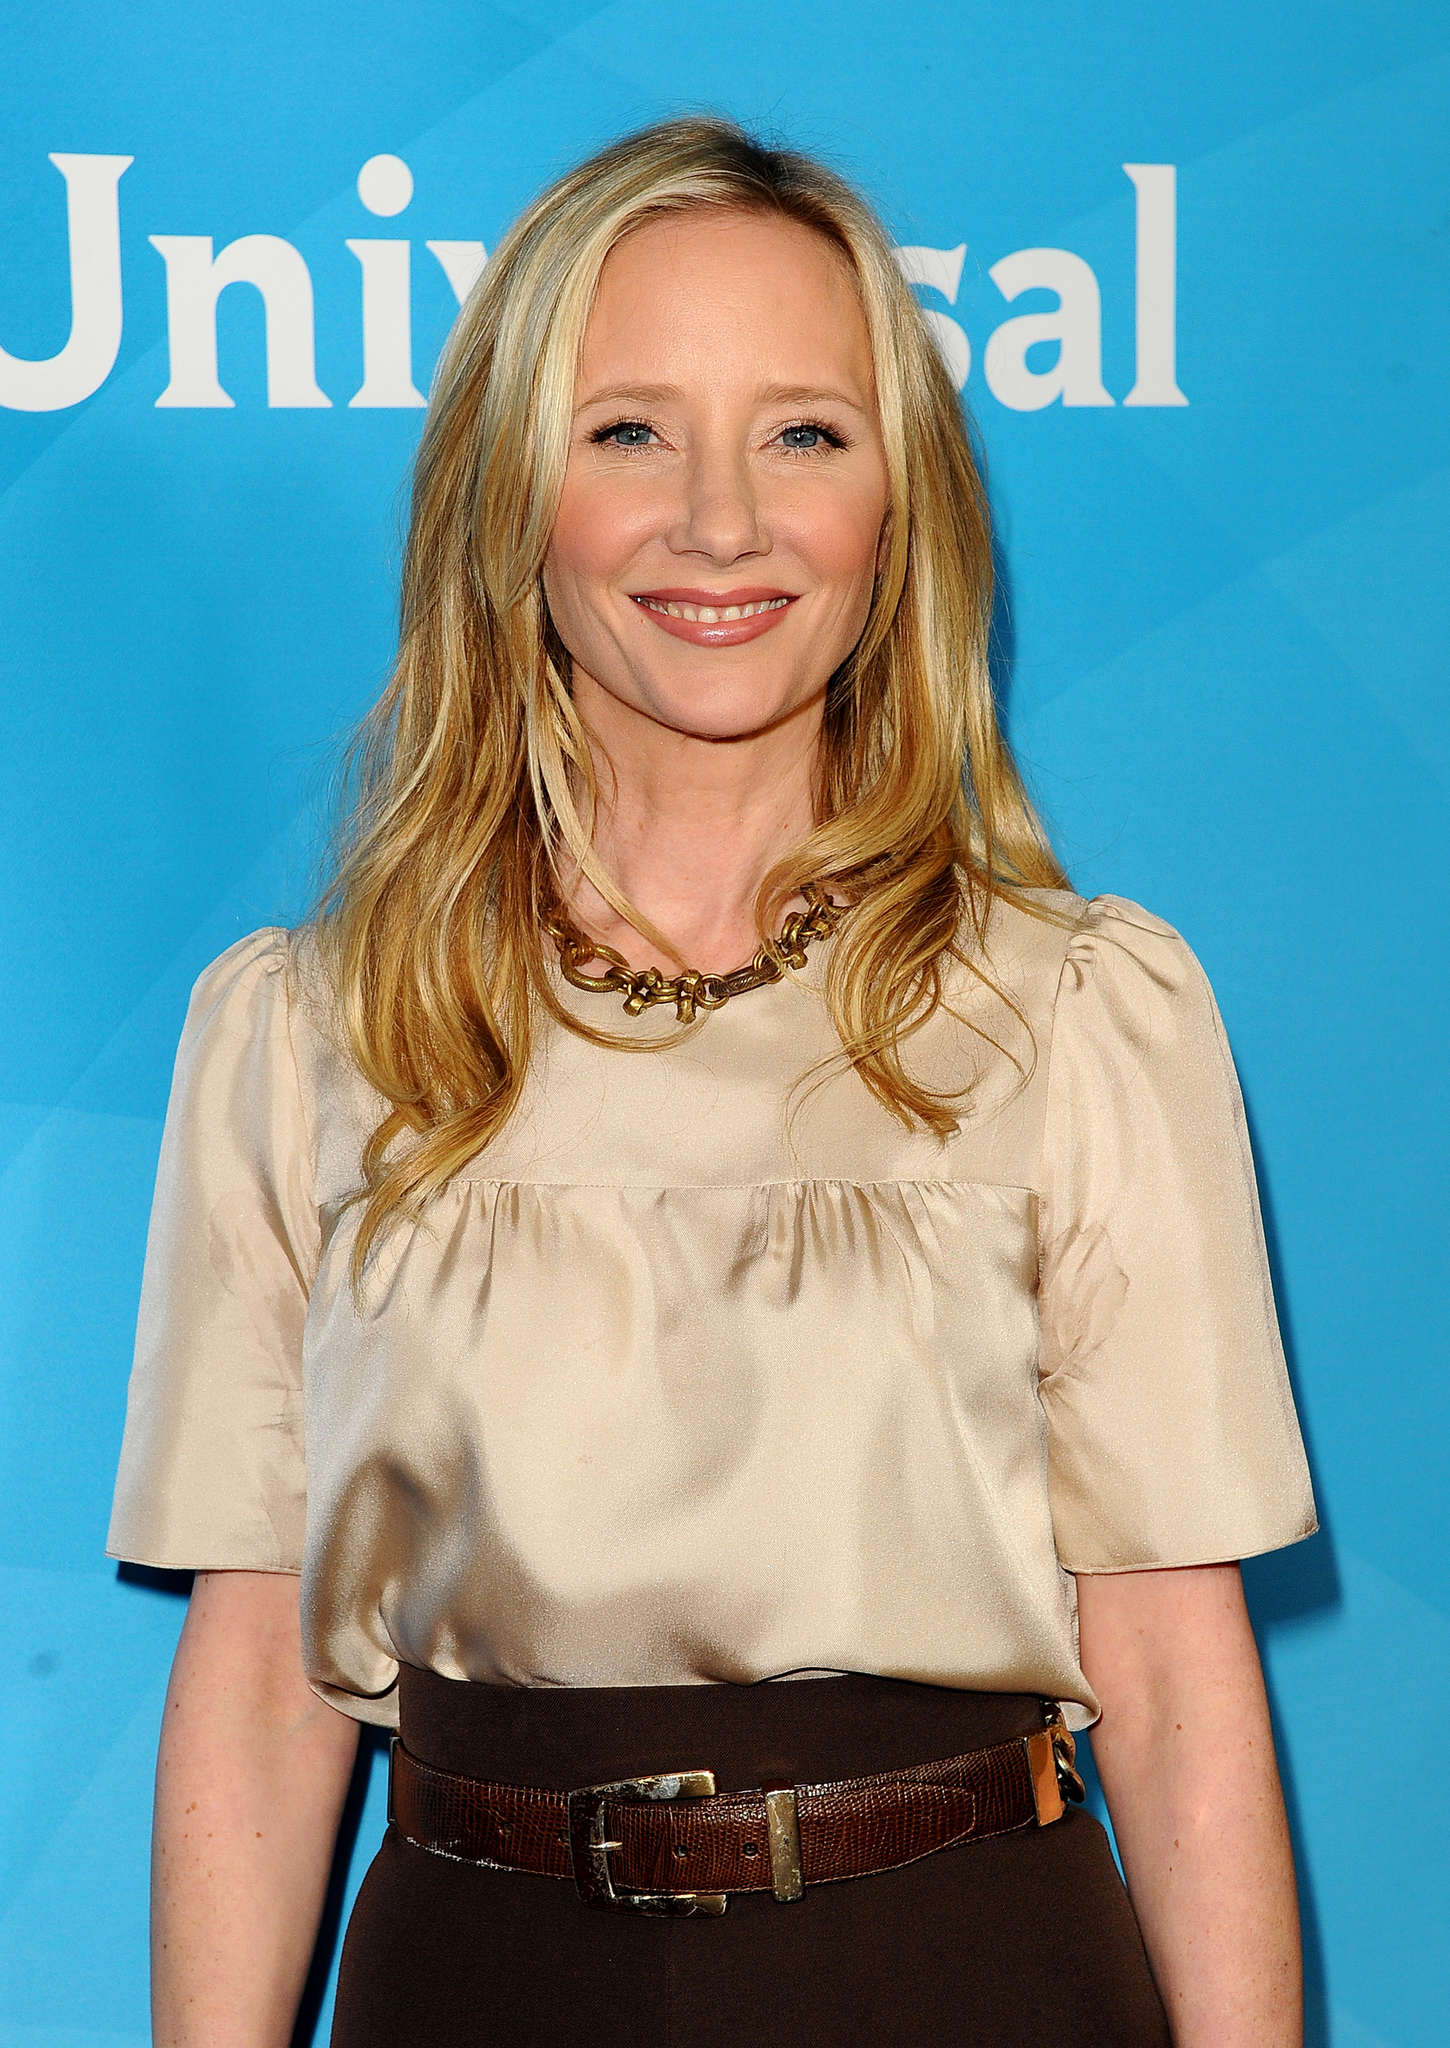 Anne Heche NBCUniversal Press Tour Day in Pasadena